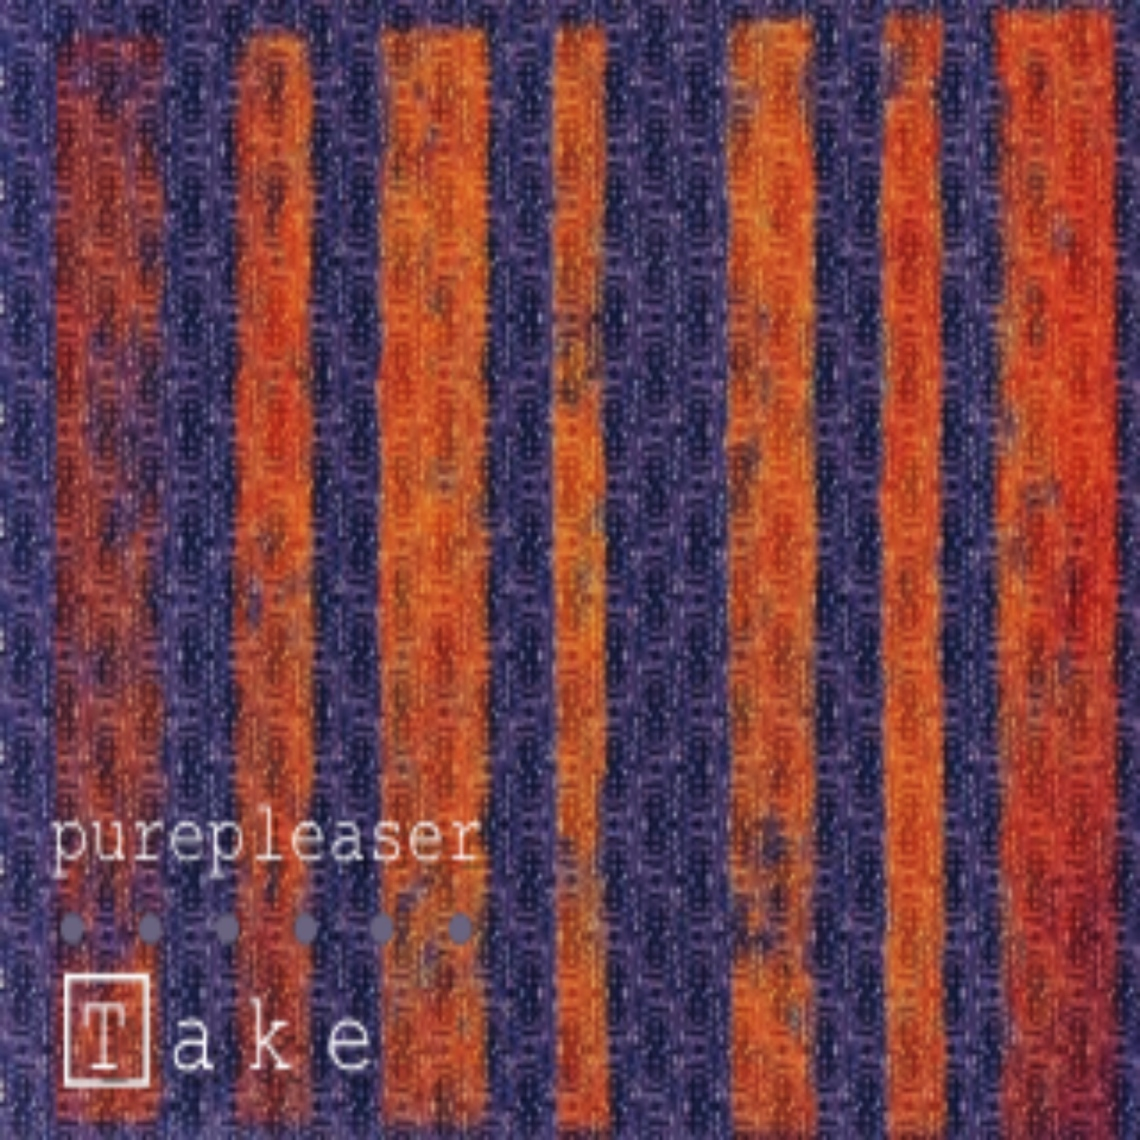 purepleaser Take LP 3 front.jpg